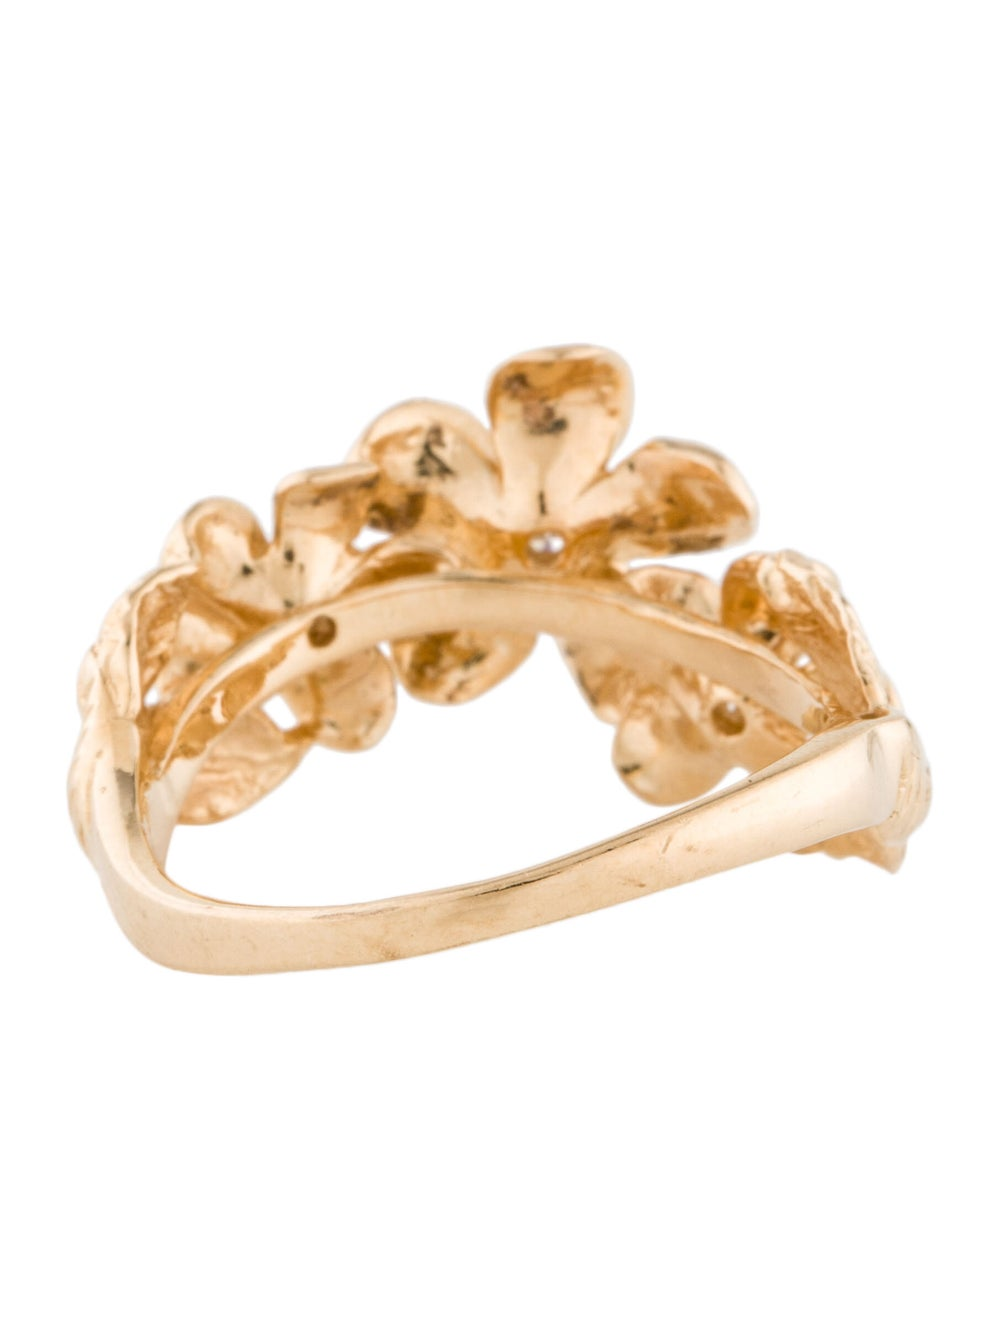 Ring 14K Diamond Flower Cocktail Ring yellow - image 4